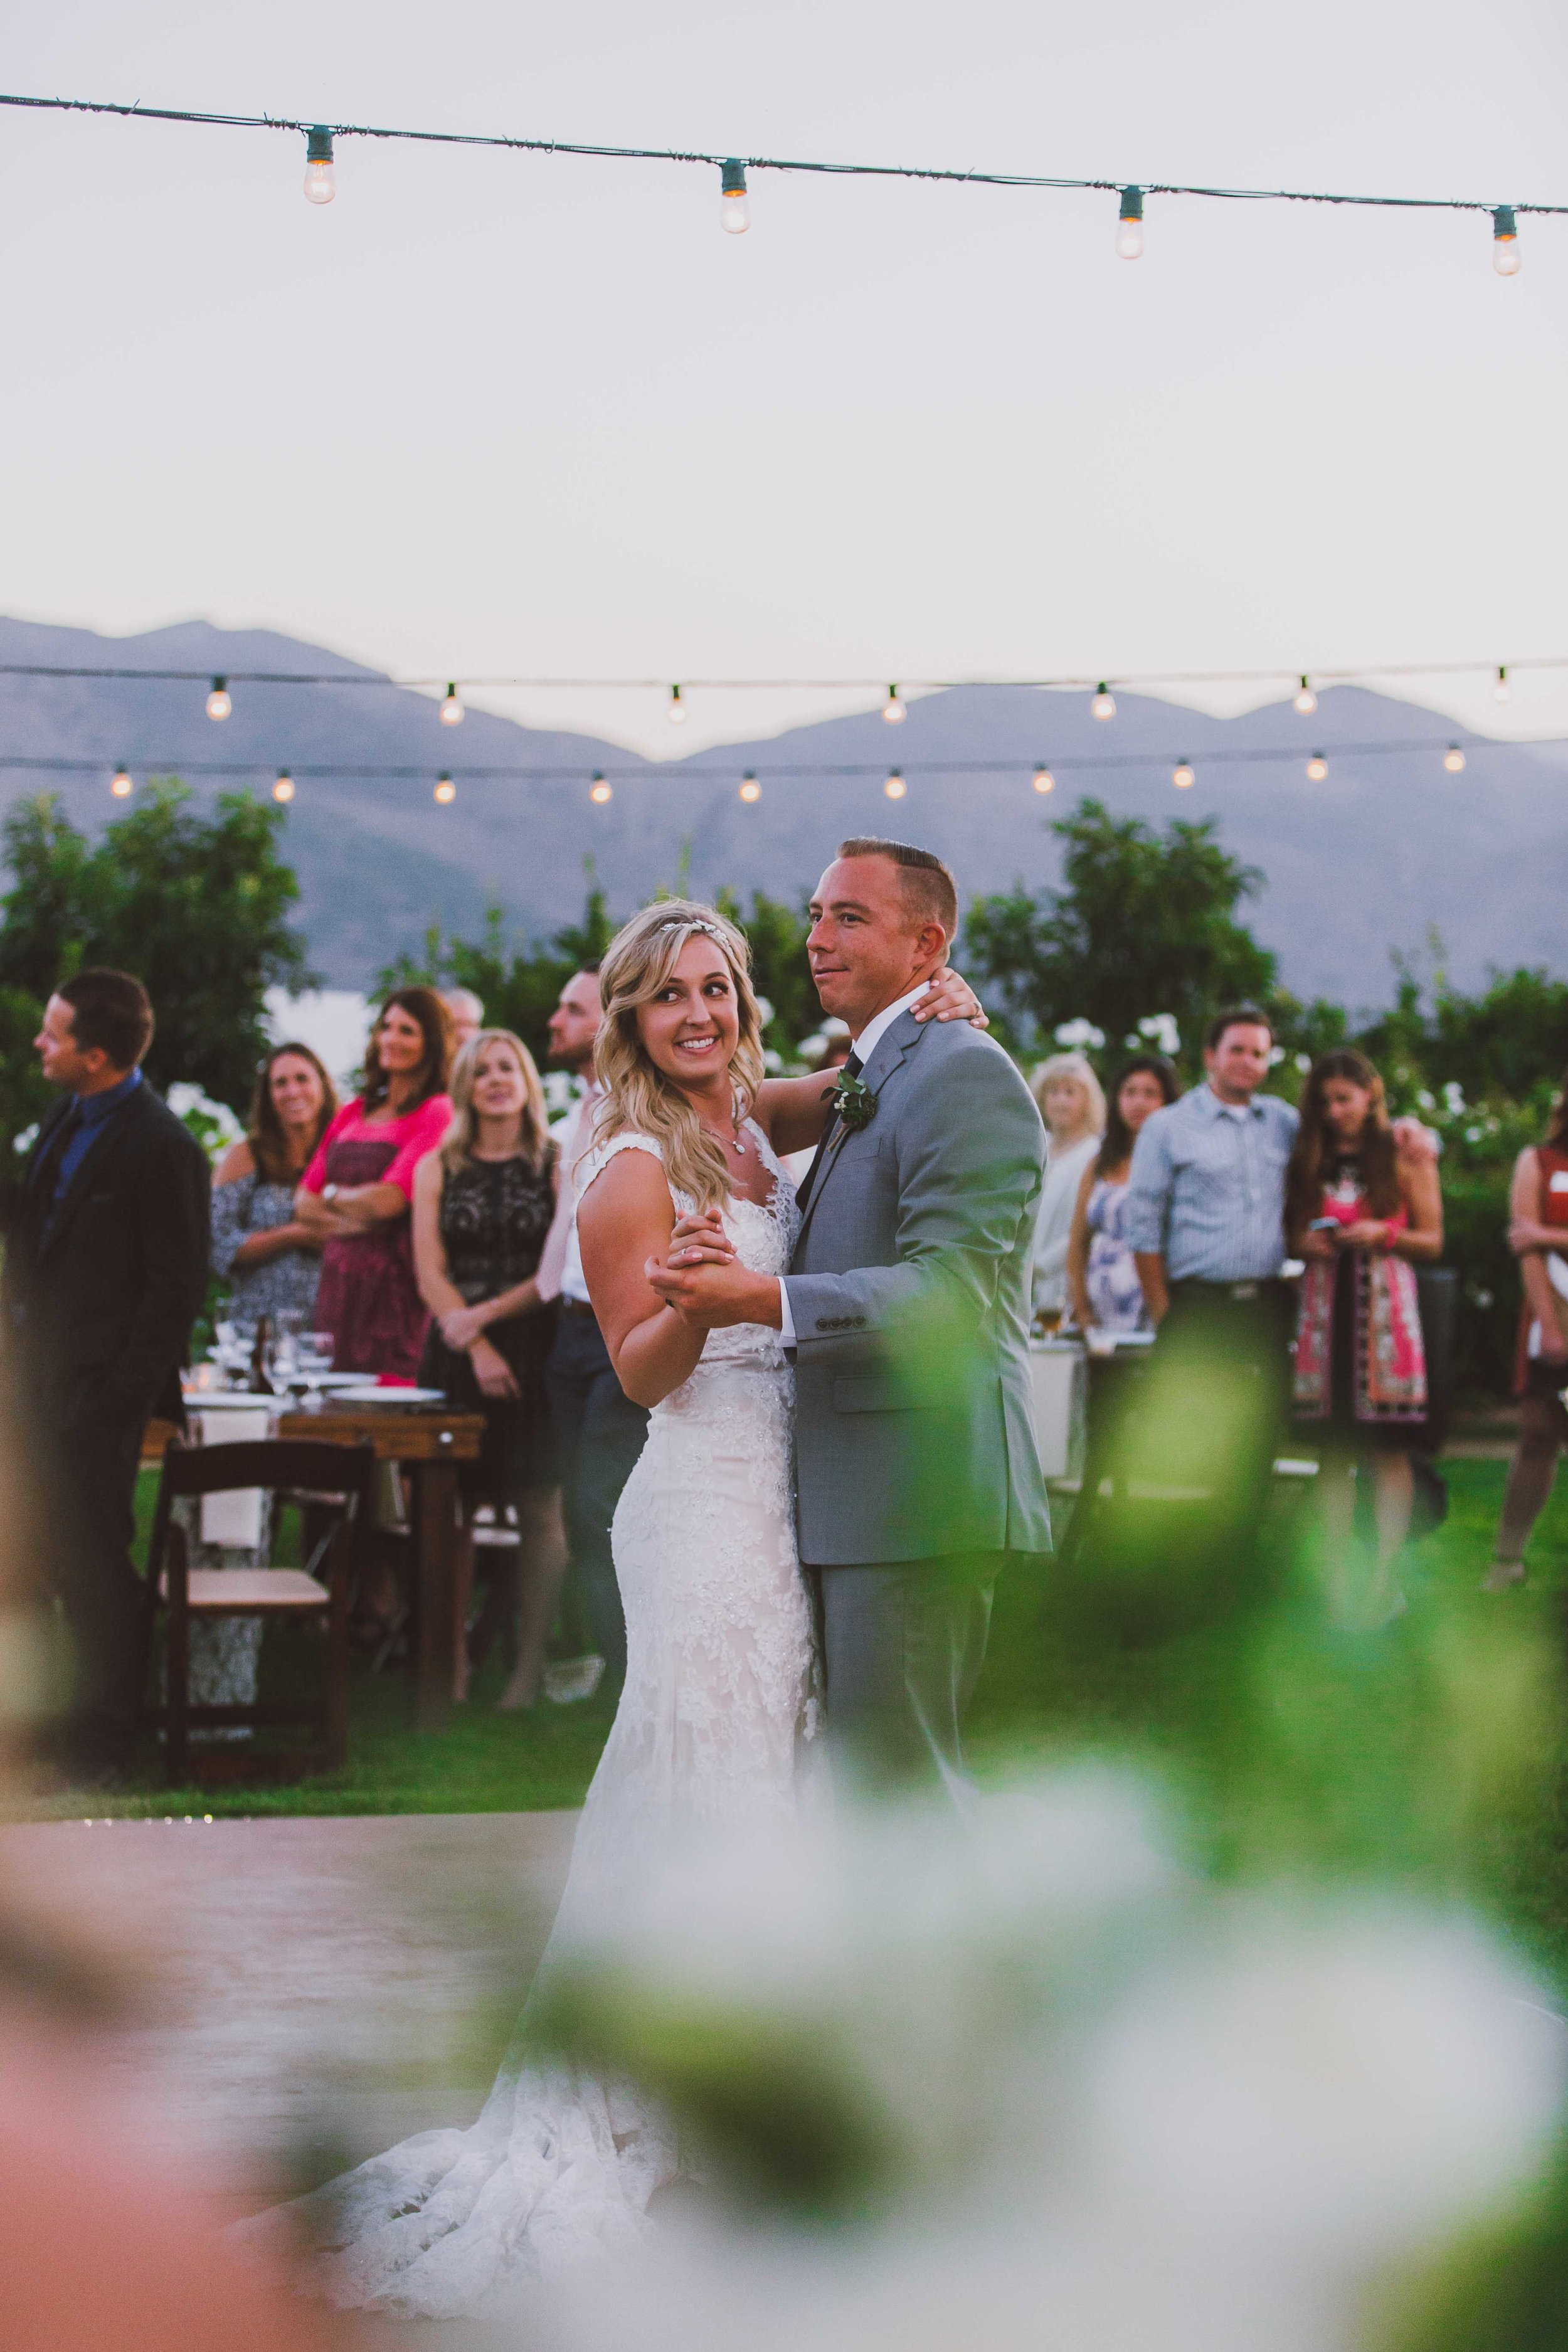 2015-Perkinson-Wedding-GerrysRanch-0213-web.jpg